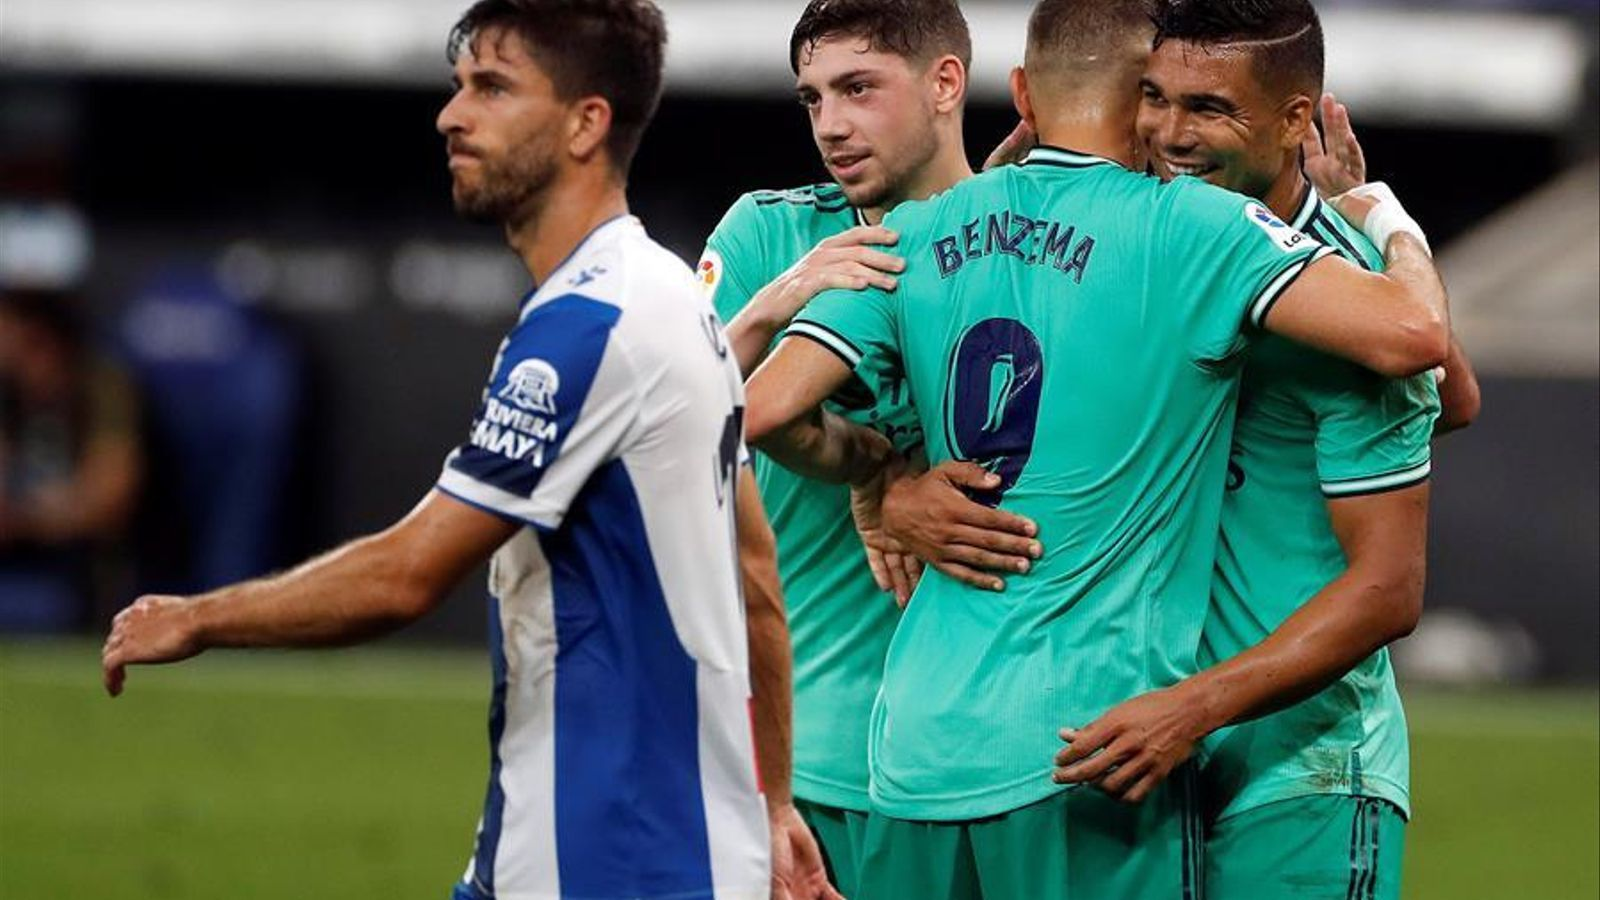 Madrid, the solo leader, is relegated to Espanyol